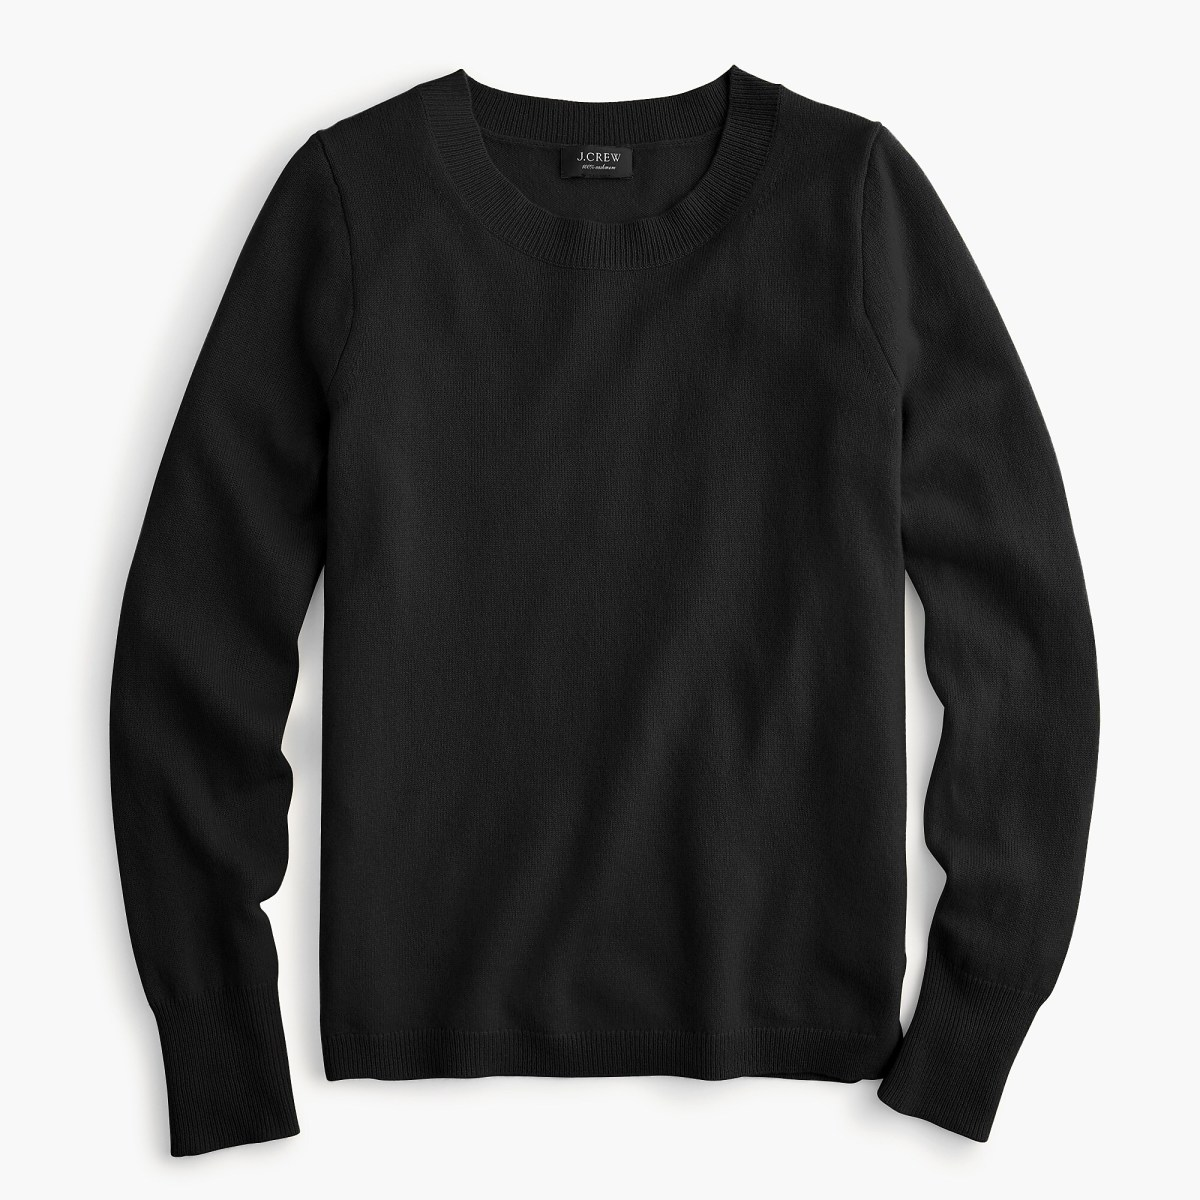 J.Crew Long-Sleeve Everyday Cashmere Crewneck Sweater, $98, available here.